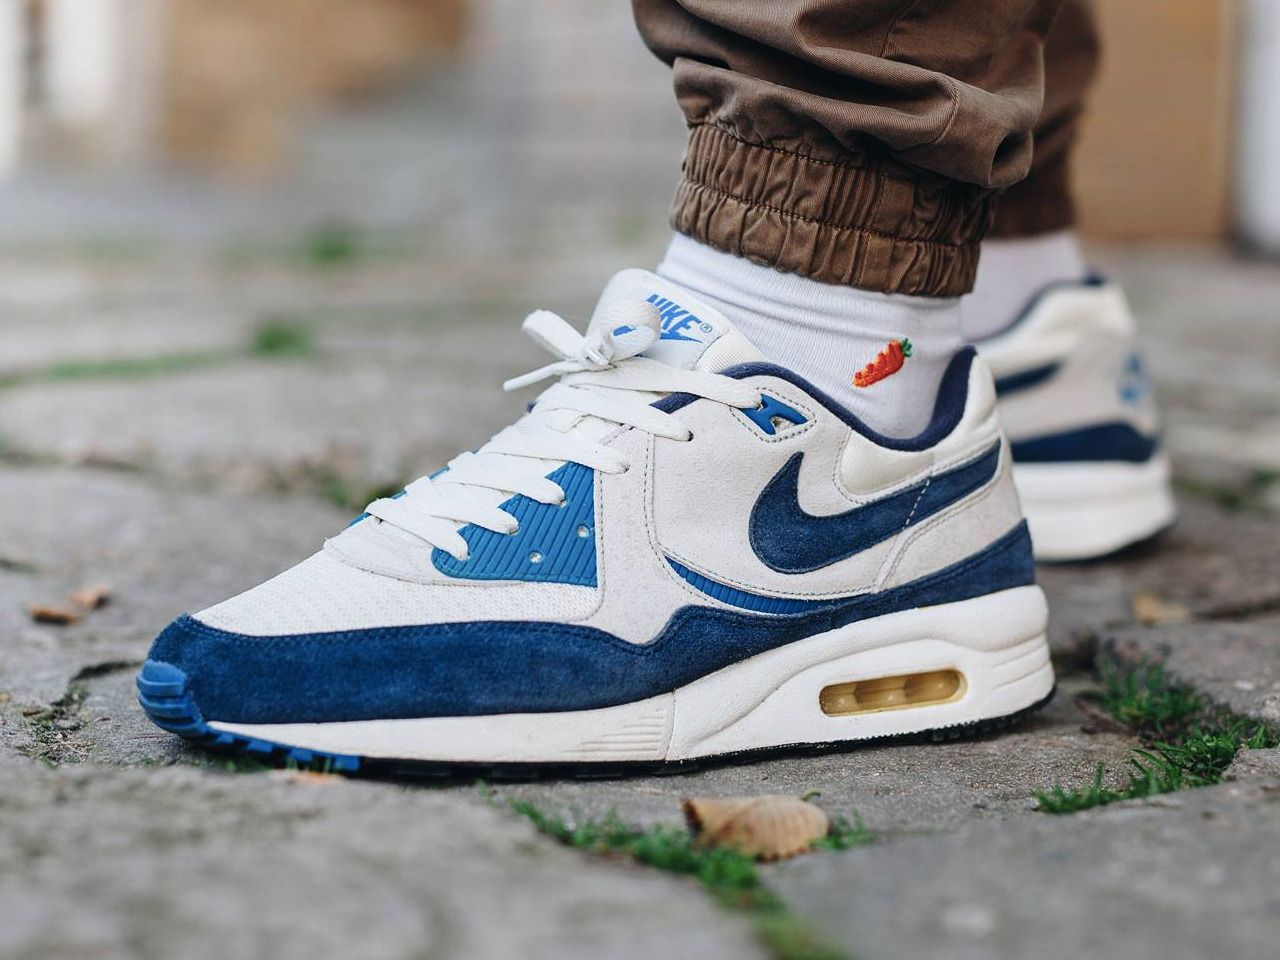 promo code 85cf9 ce545 Nike Air Max Light Vintage - White Navy - 2011 (by Kamil Tomaszewski)